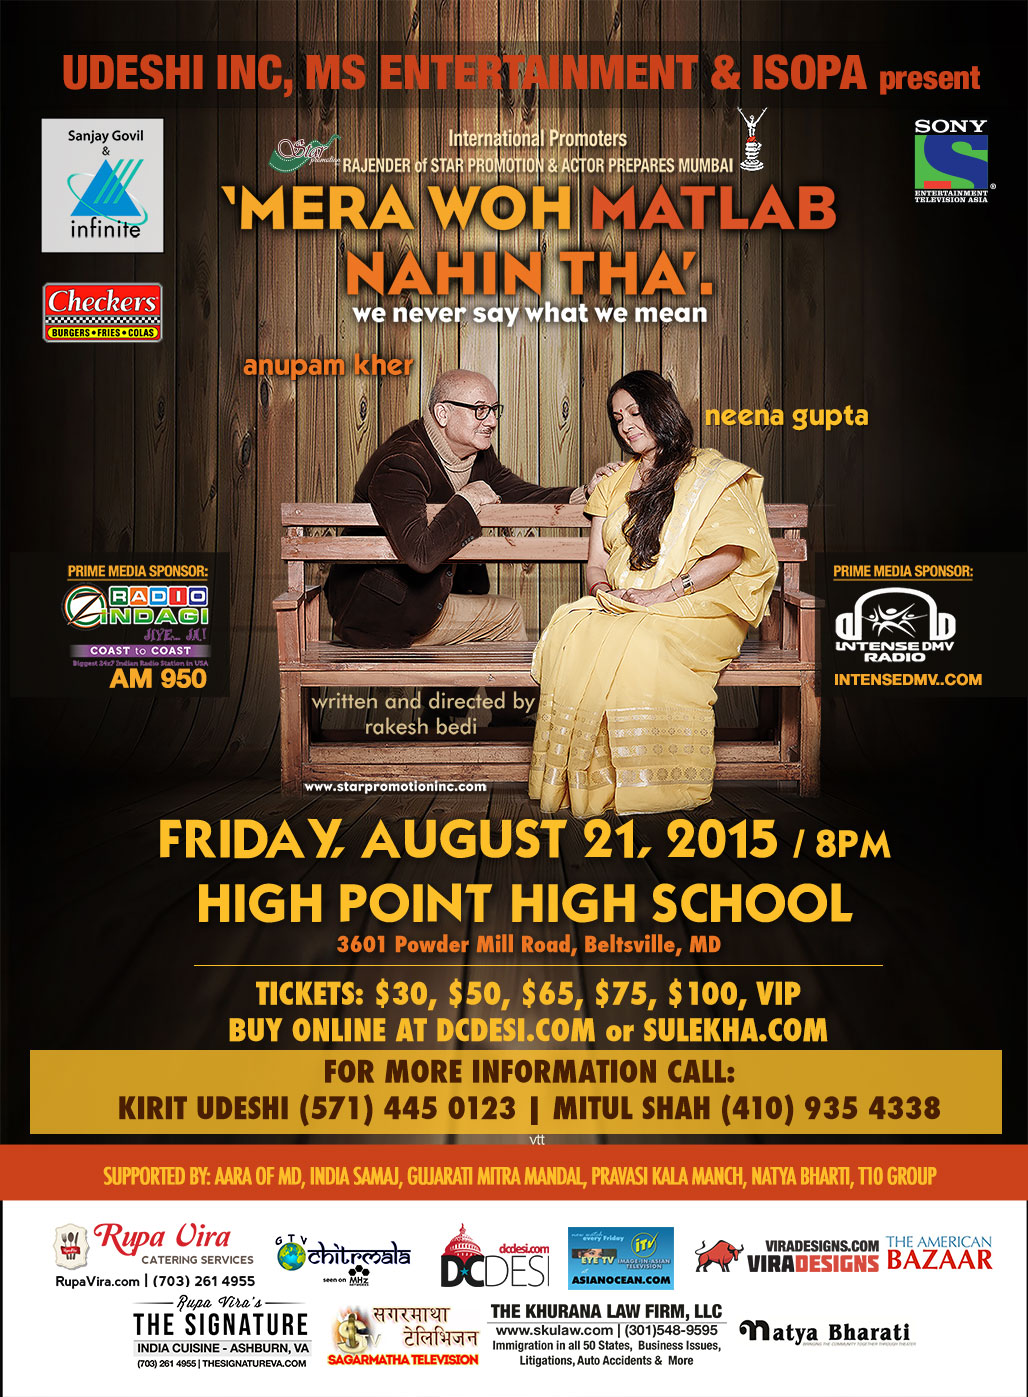 Mera Woh Matlab Nahin Live in Washington DC